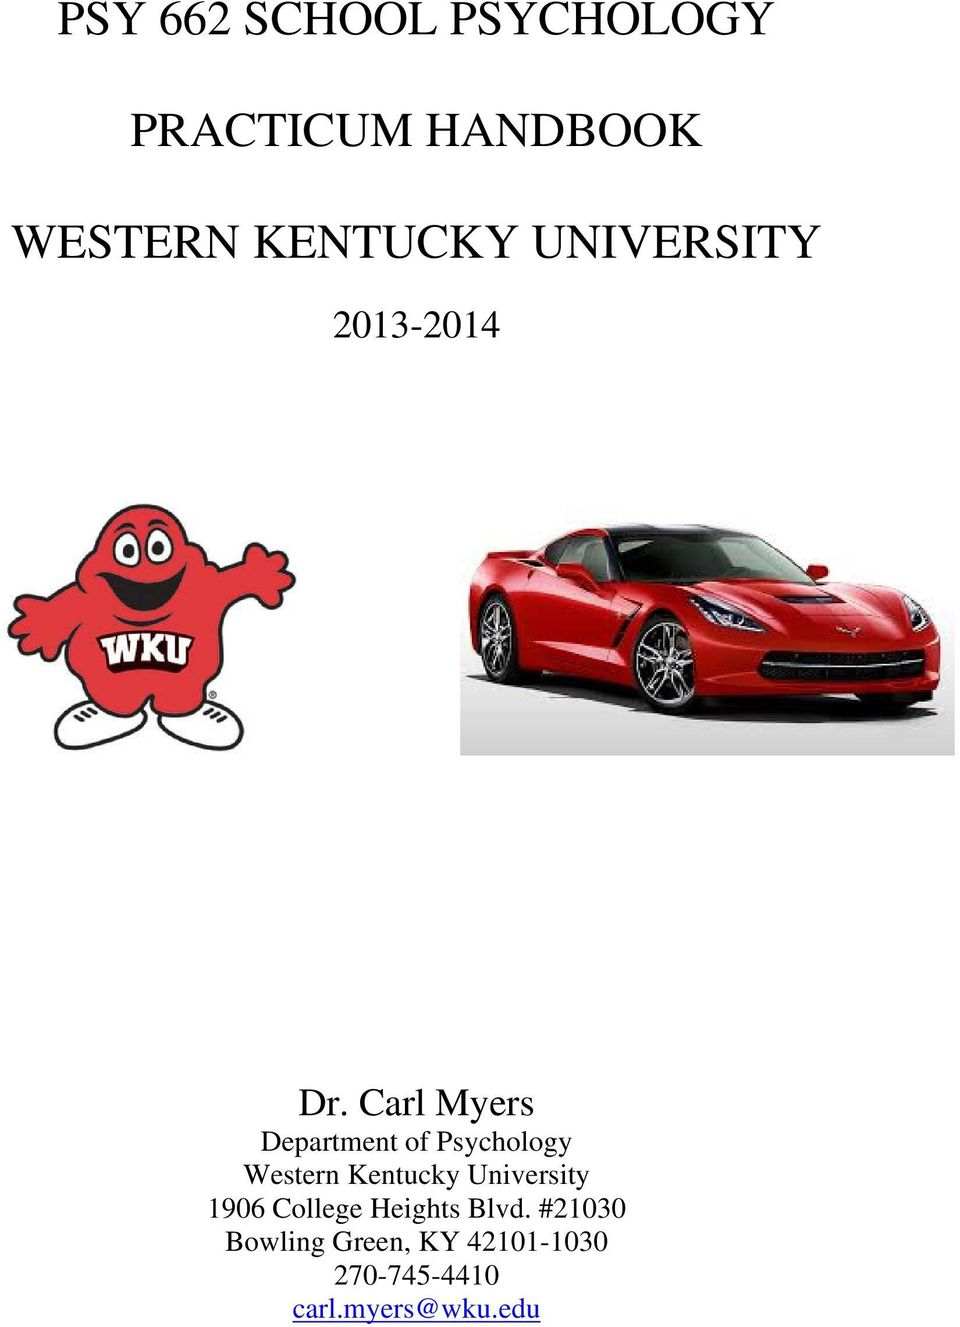 Carl Myers Department of Psychology Western Kentucky